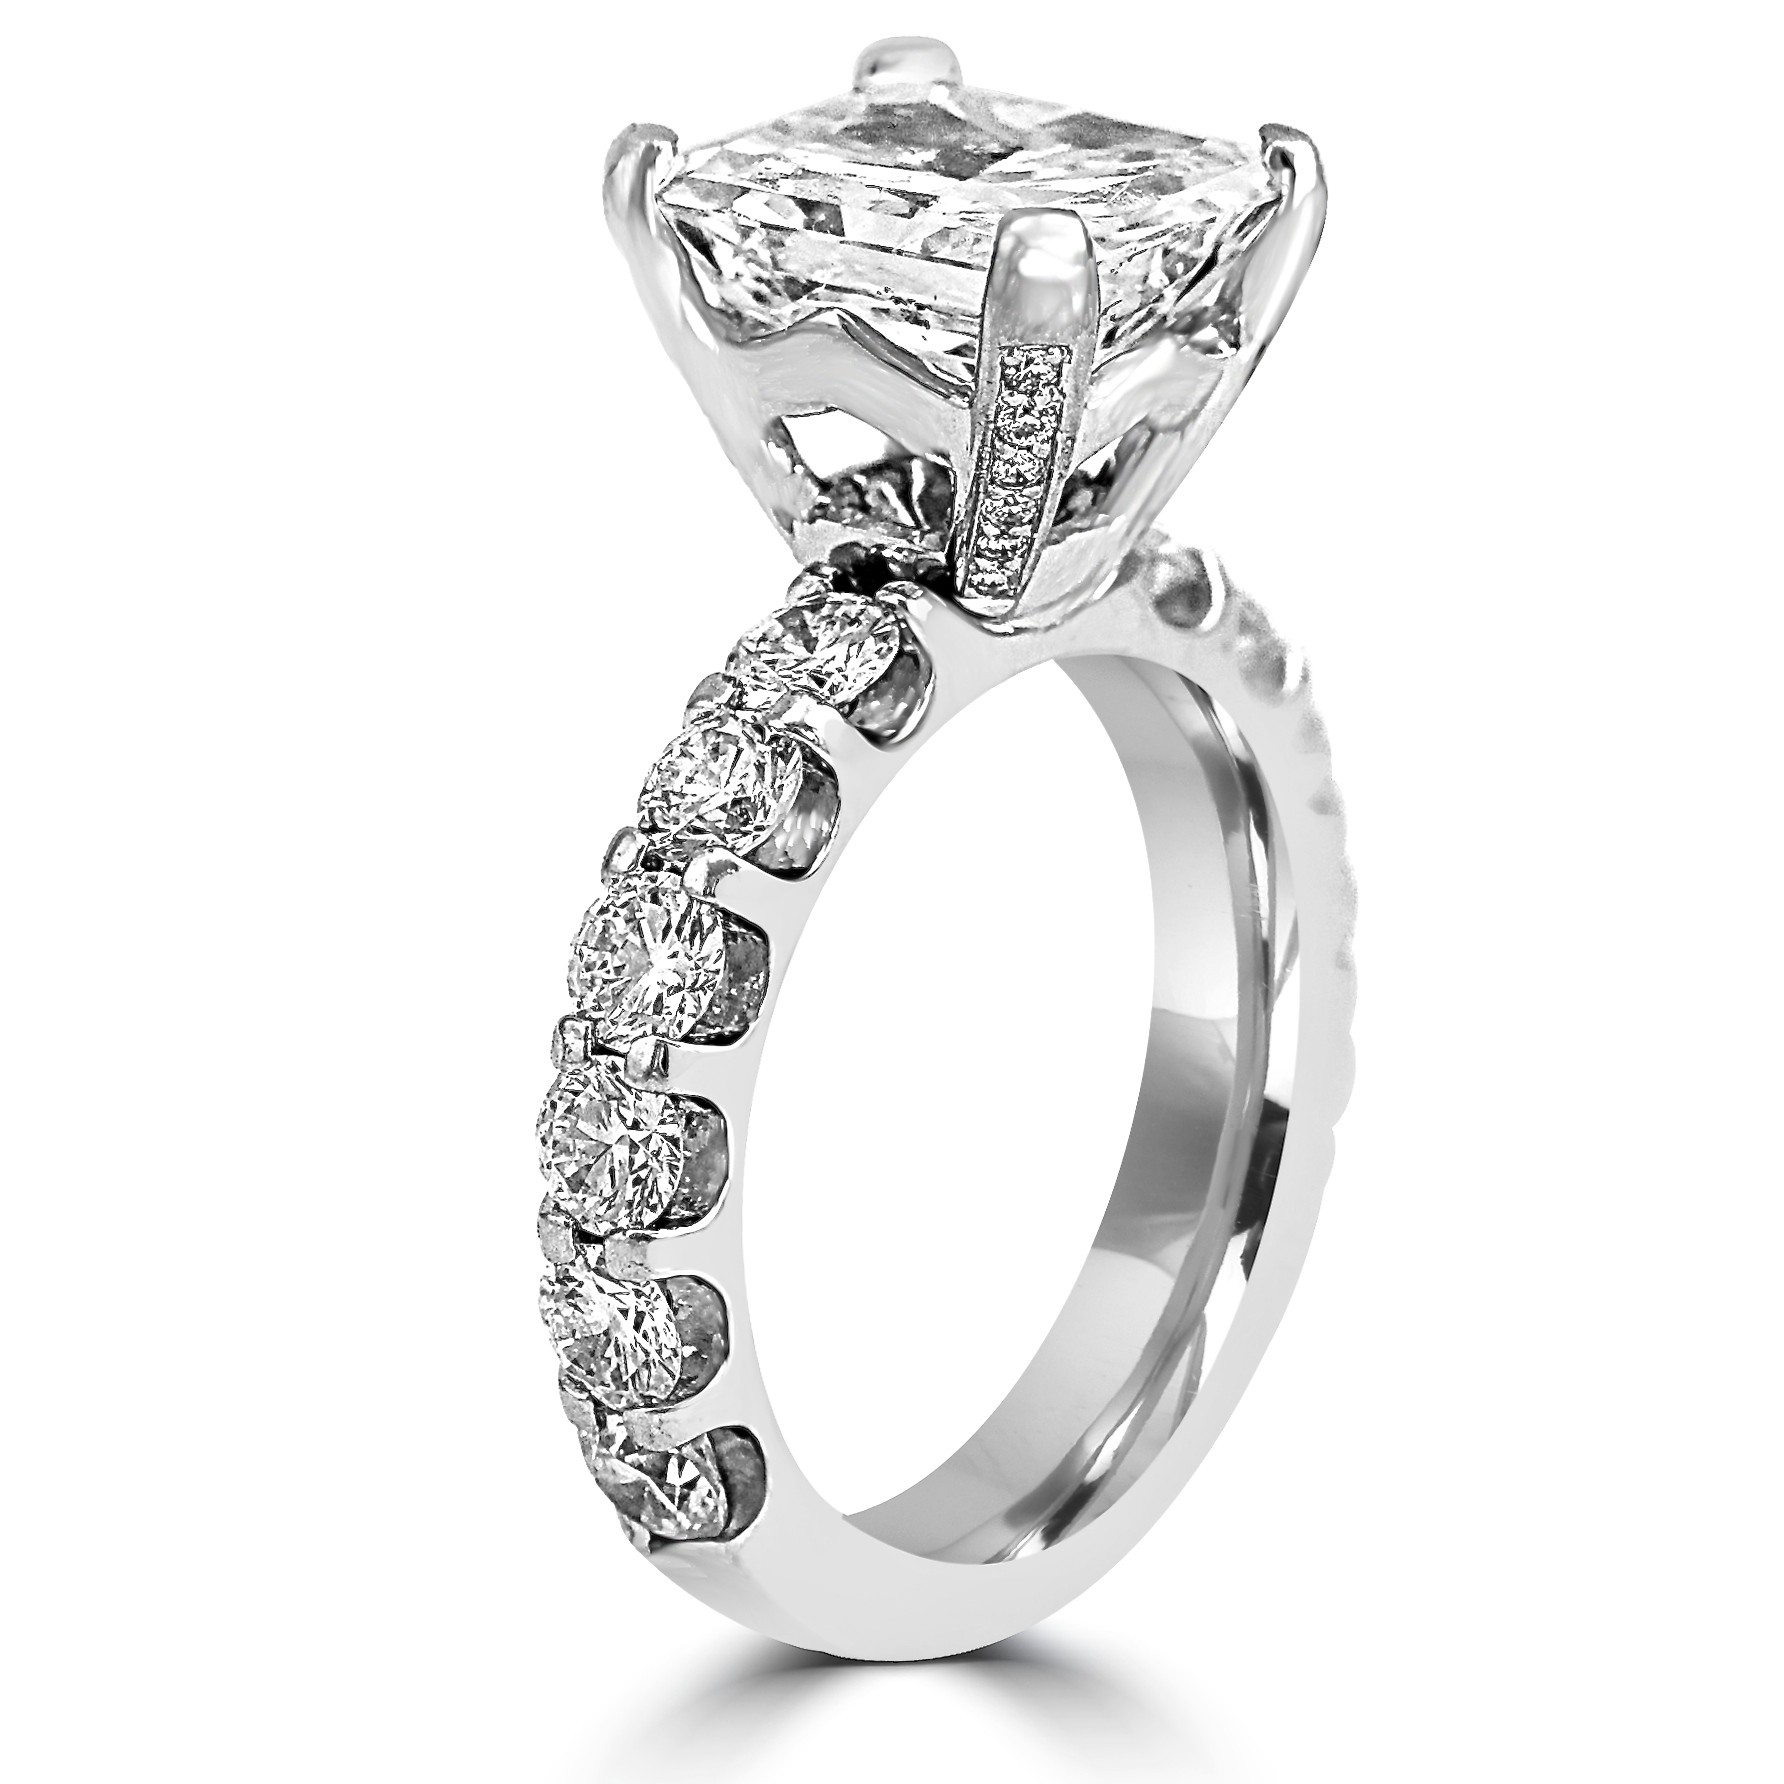 style set setting ring plat radiant kwiat in the platinum jewelry engagement solitaire diamond rings